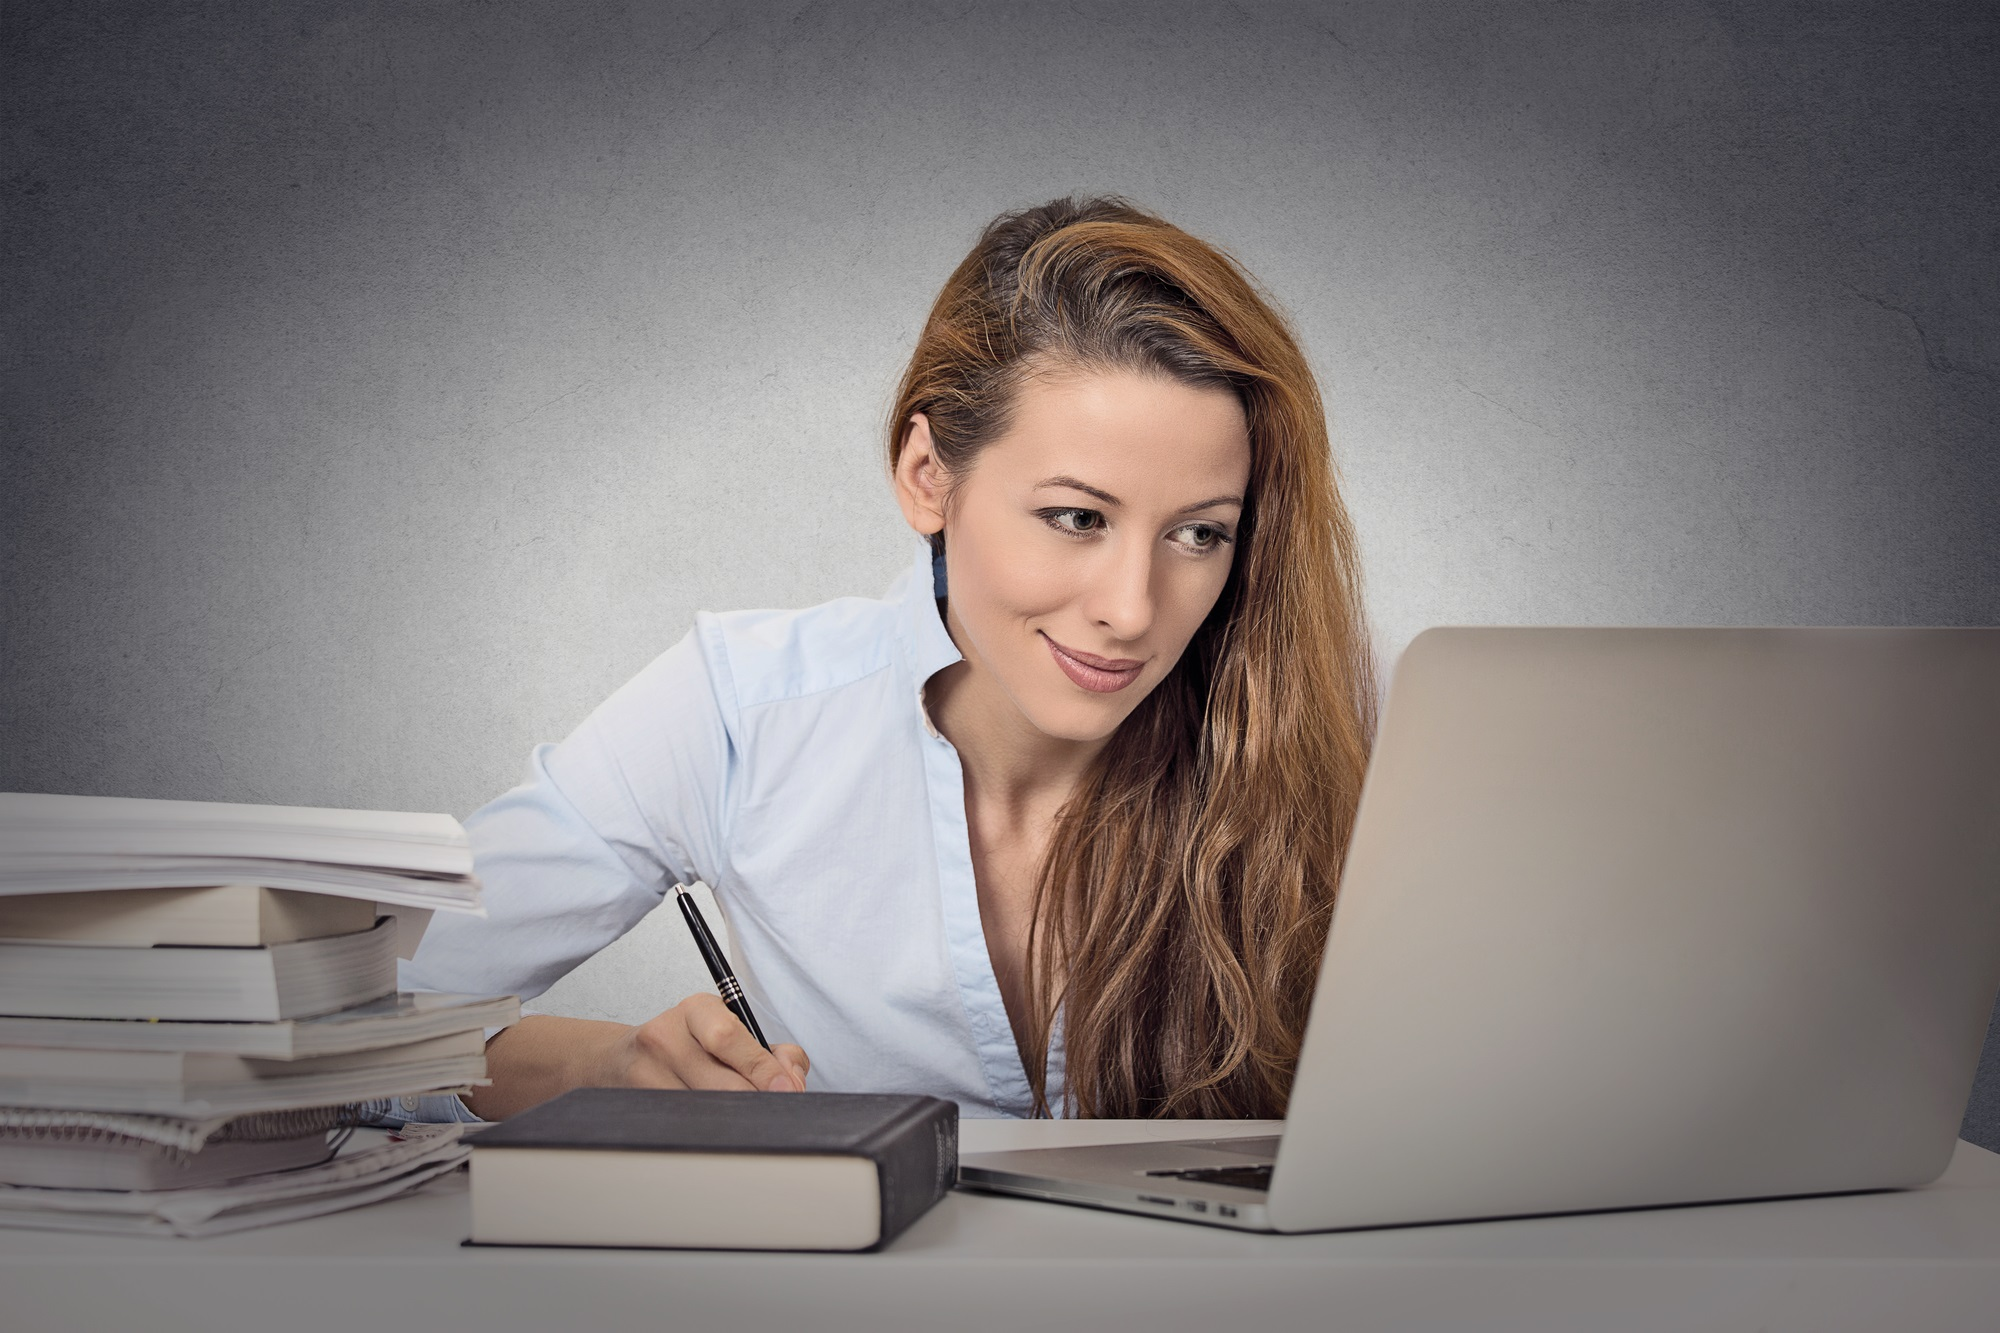 5 Effective Ways to Get Your Assignments Done Online